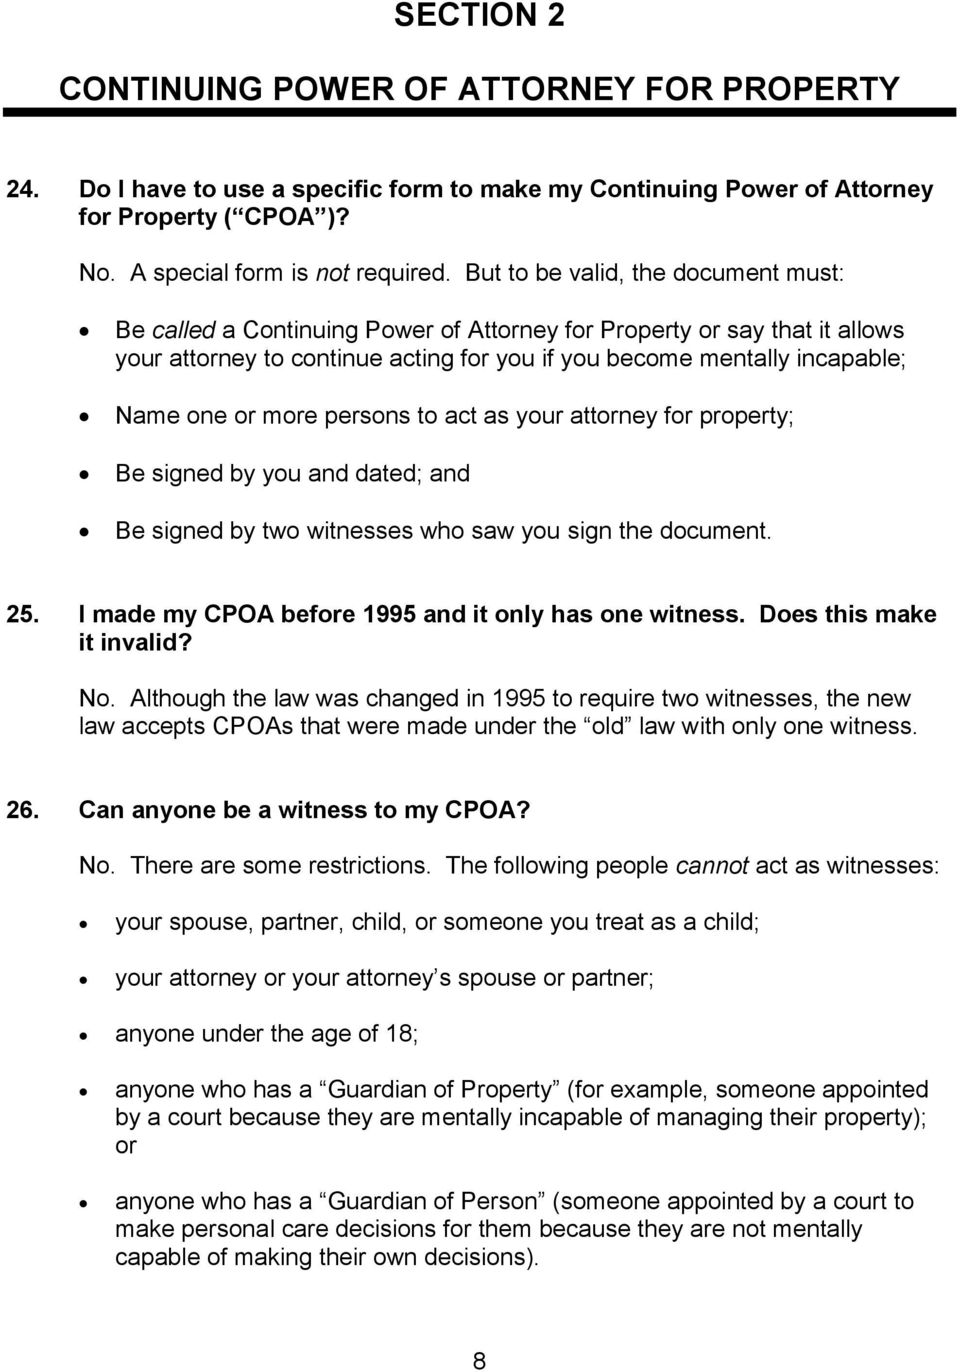 more persons to act as your attorney for property; Be signed by you and dated; and Be signed by two witnesses who saw you sign the document. 25. I made my CPOA before 1995 and it only has one witness.